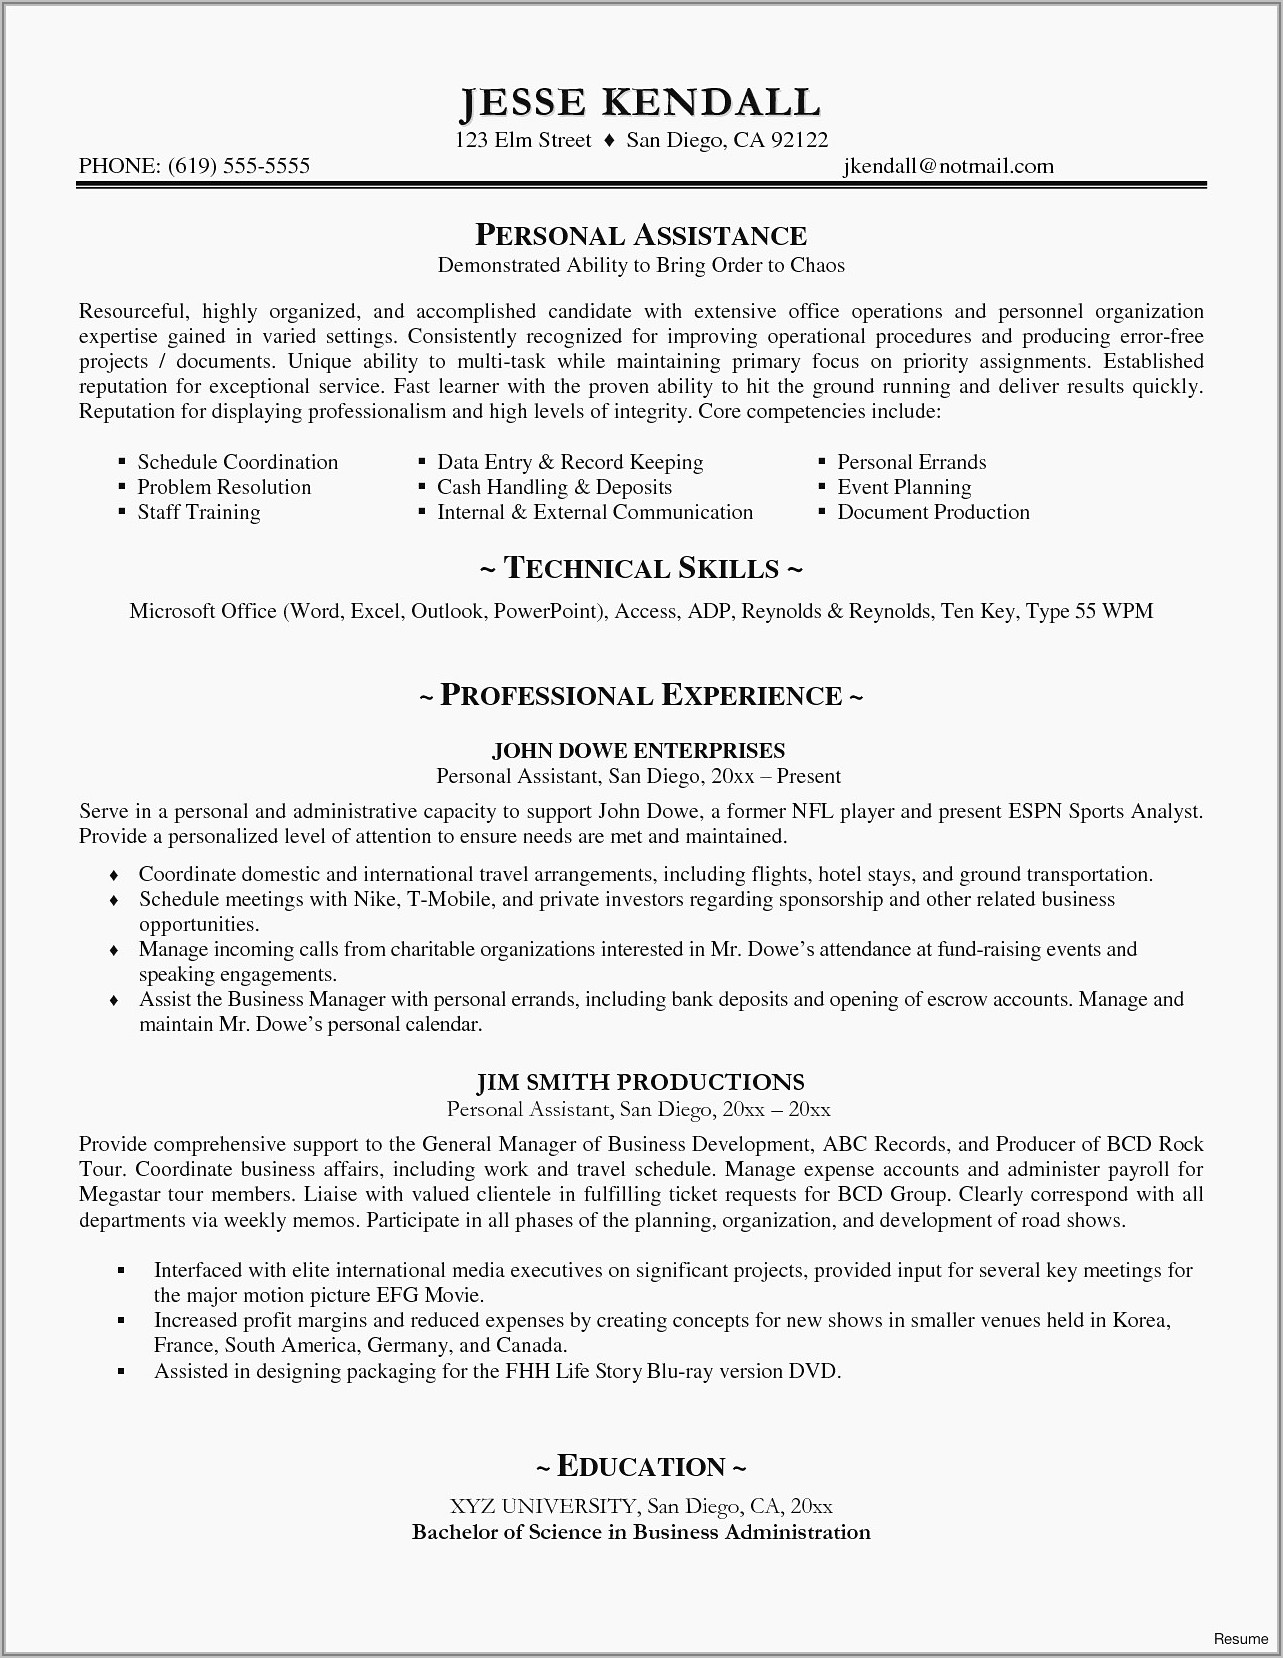 Best Rated Free Resume Templates